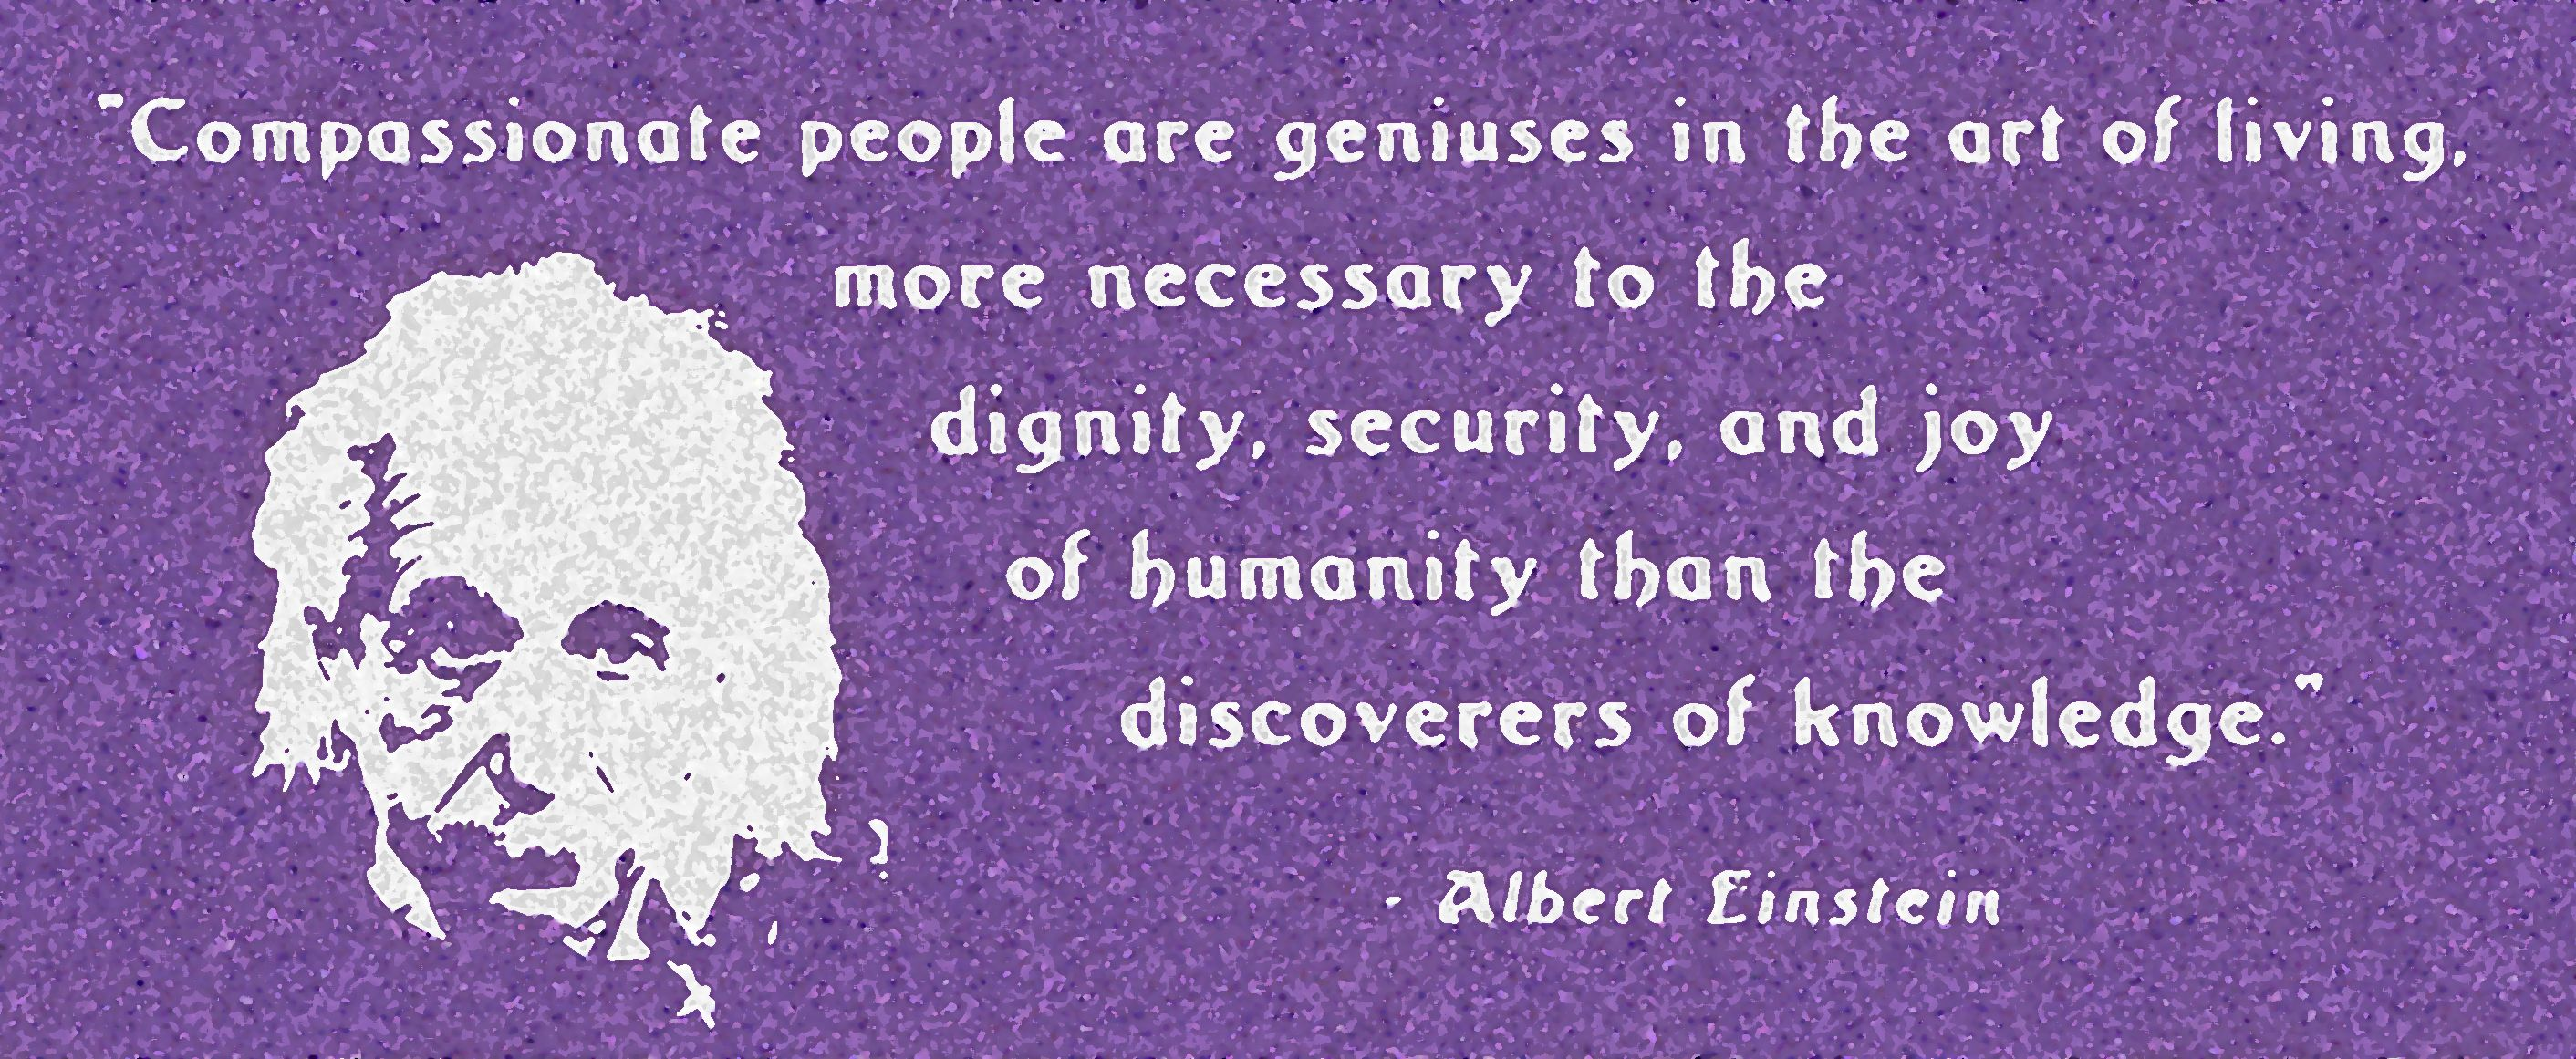 Image from http://peacetour.org/sites/default/files/Einstein-quote-8m.jpg.